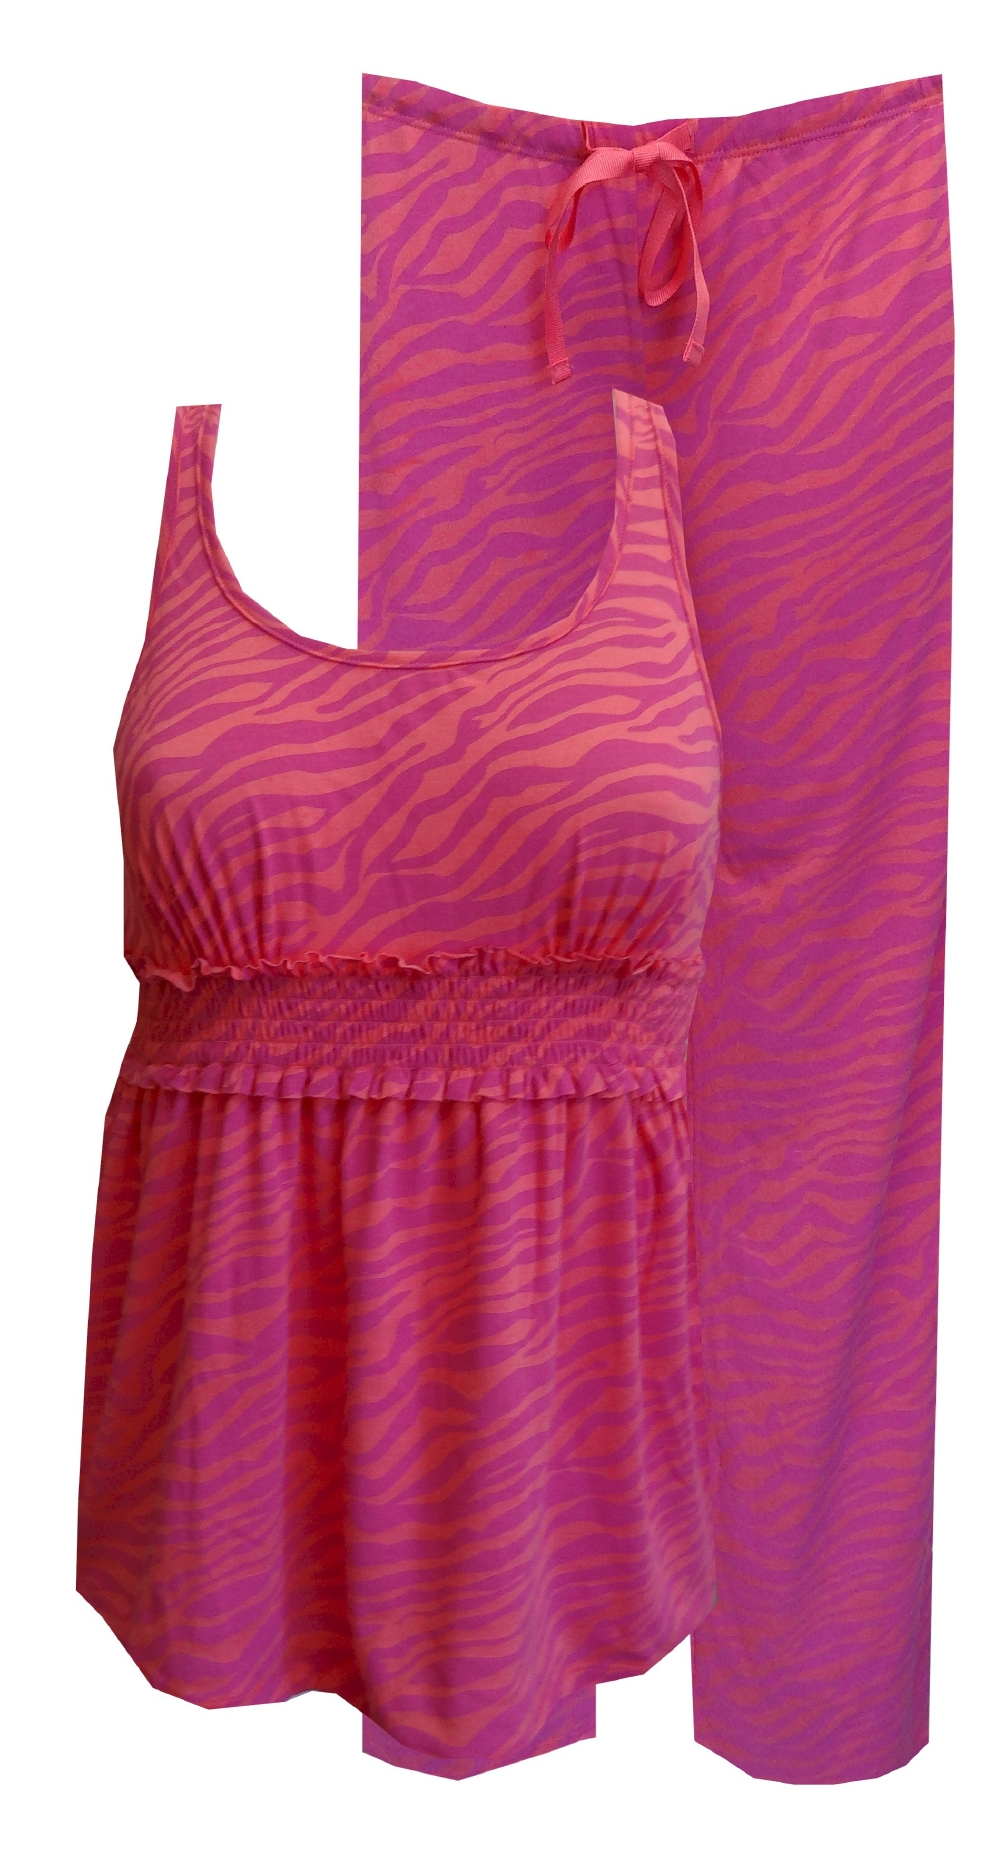 Coral and Hot Pink Zebra Babydoll Pajamas for women